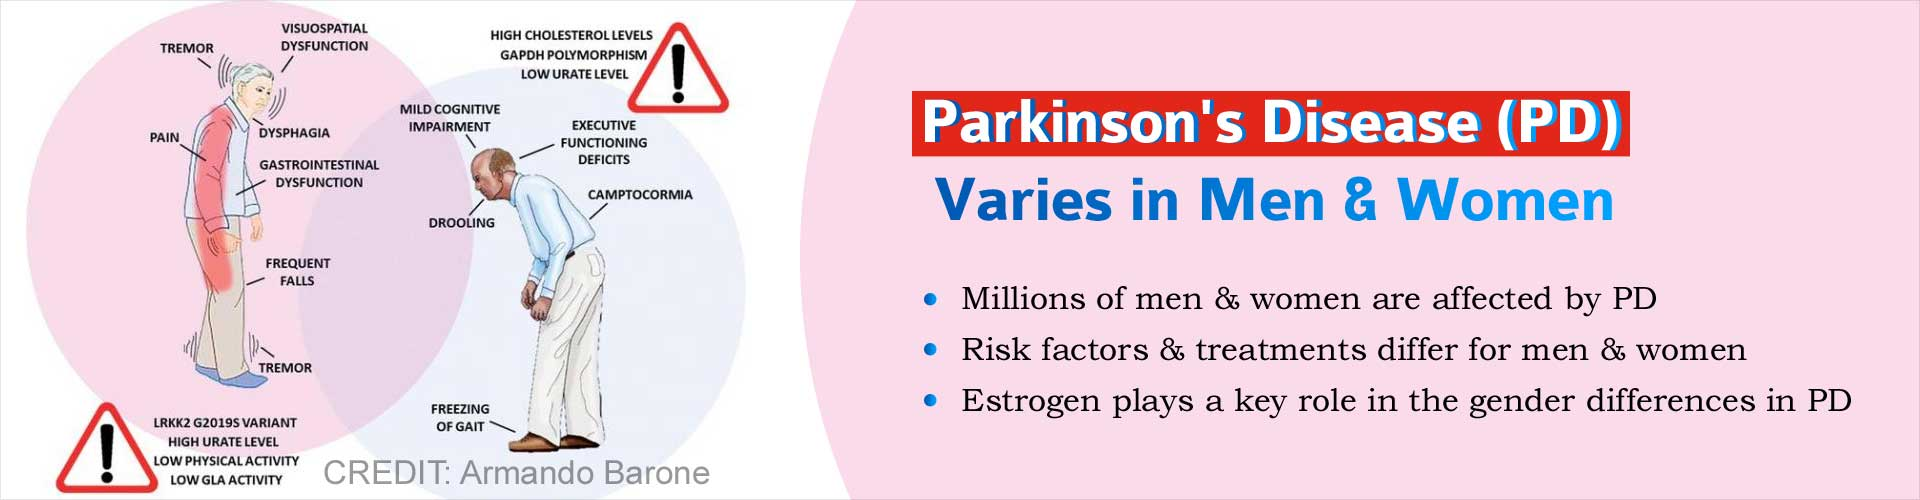 Parkinson''s Disease Affects Men and Women Differently